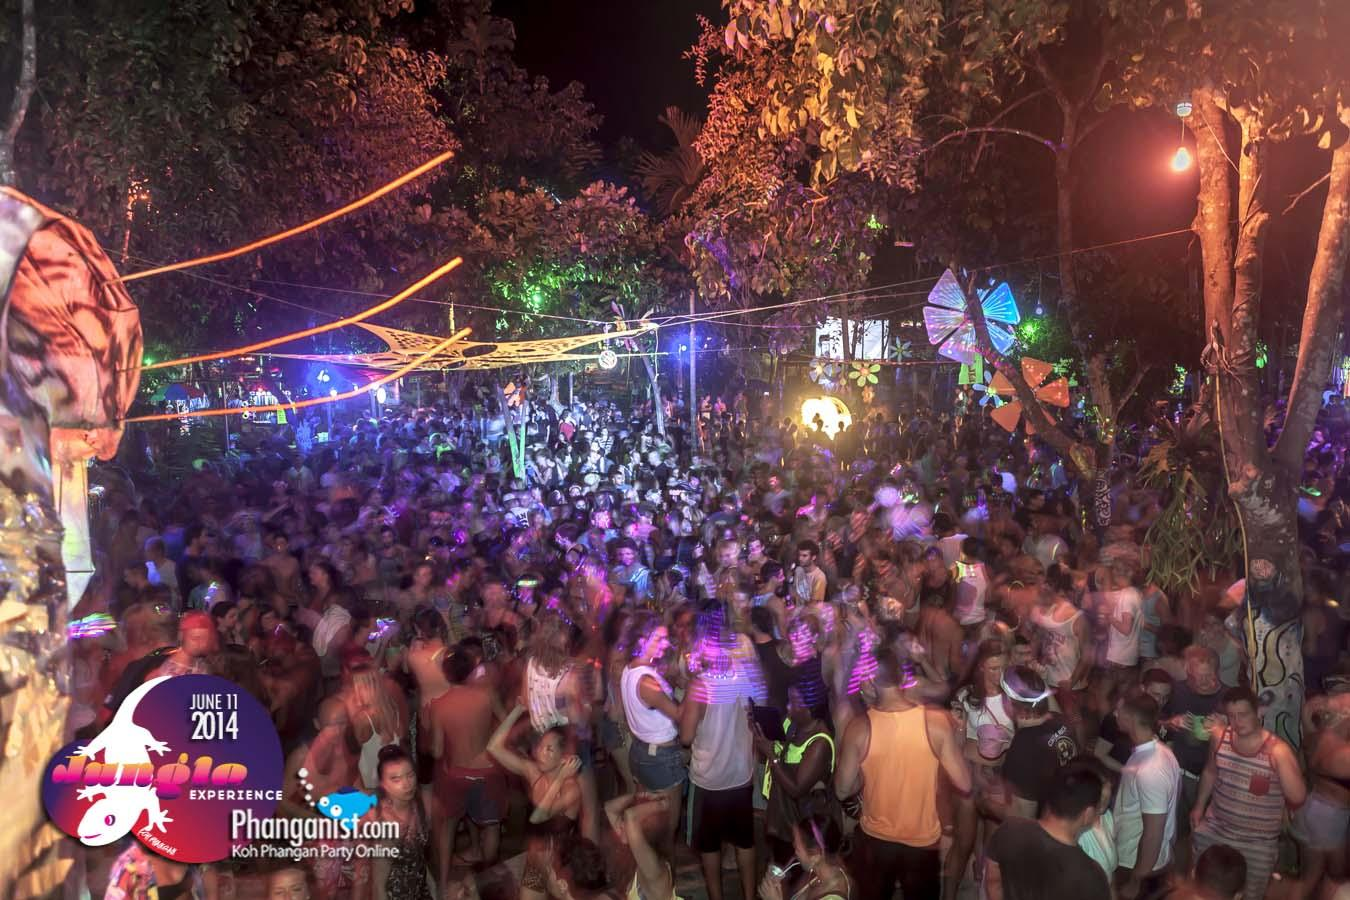 Jungle Experience Party Koh Phangan